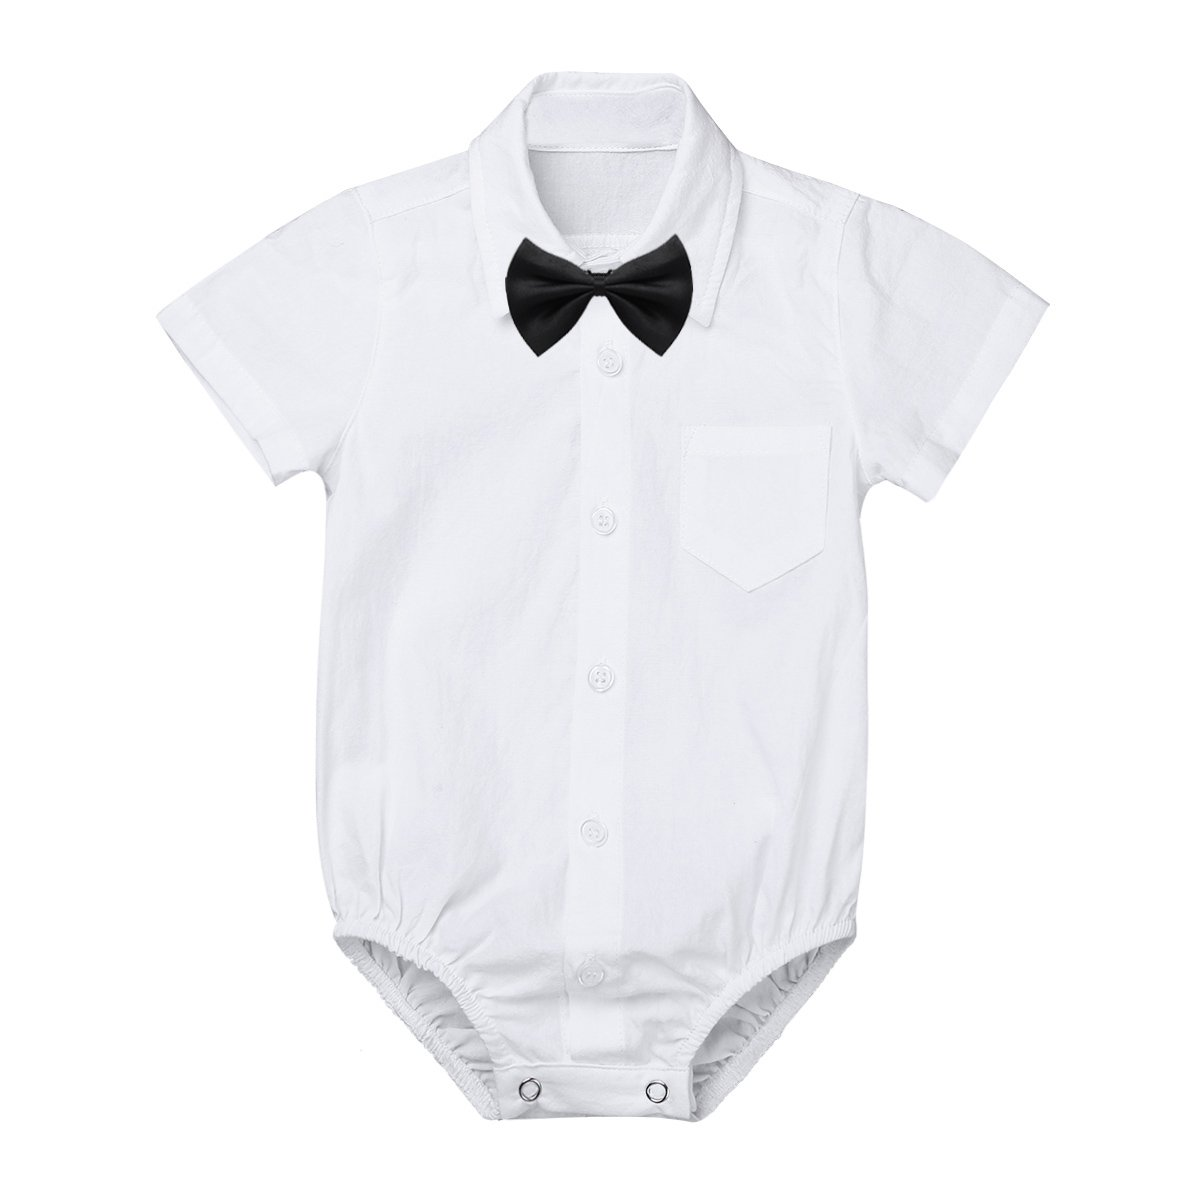 MSemis Baby Boys' White Formal Dress Shirts Gentleman Romper Bodysuit Wedding Party Outfits Short Sleeve Bow-tie 6 Months